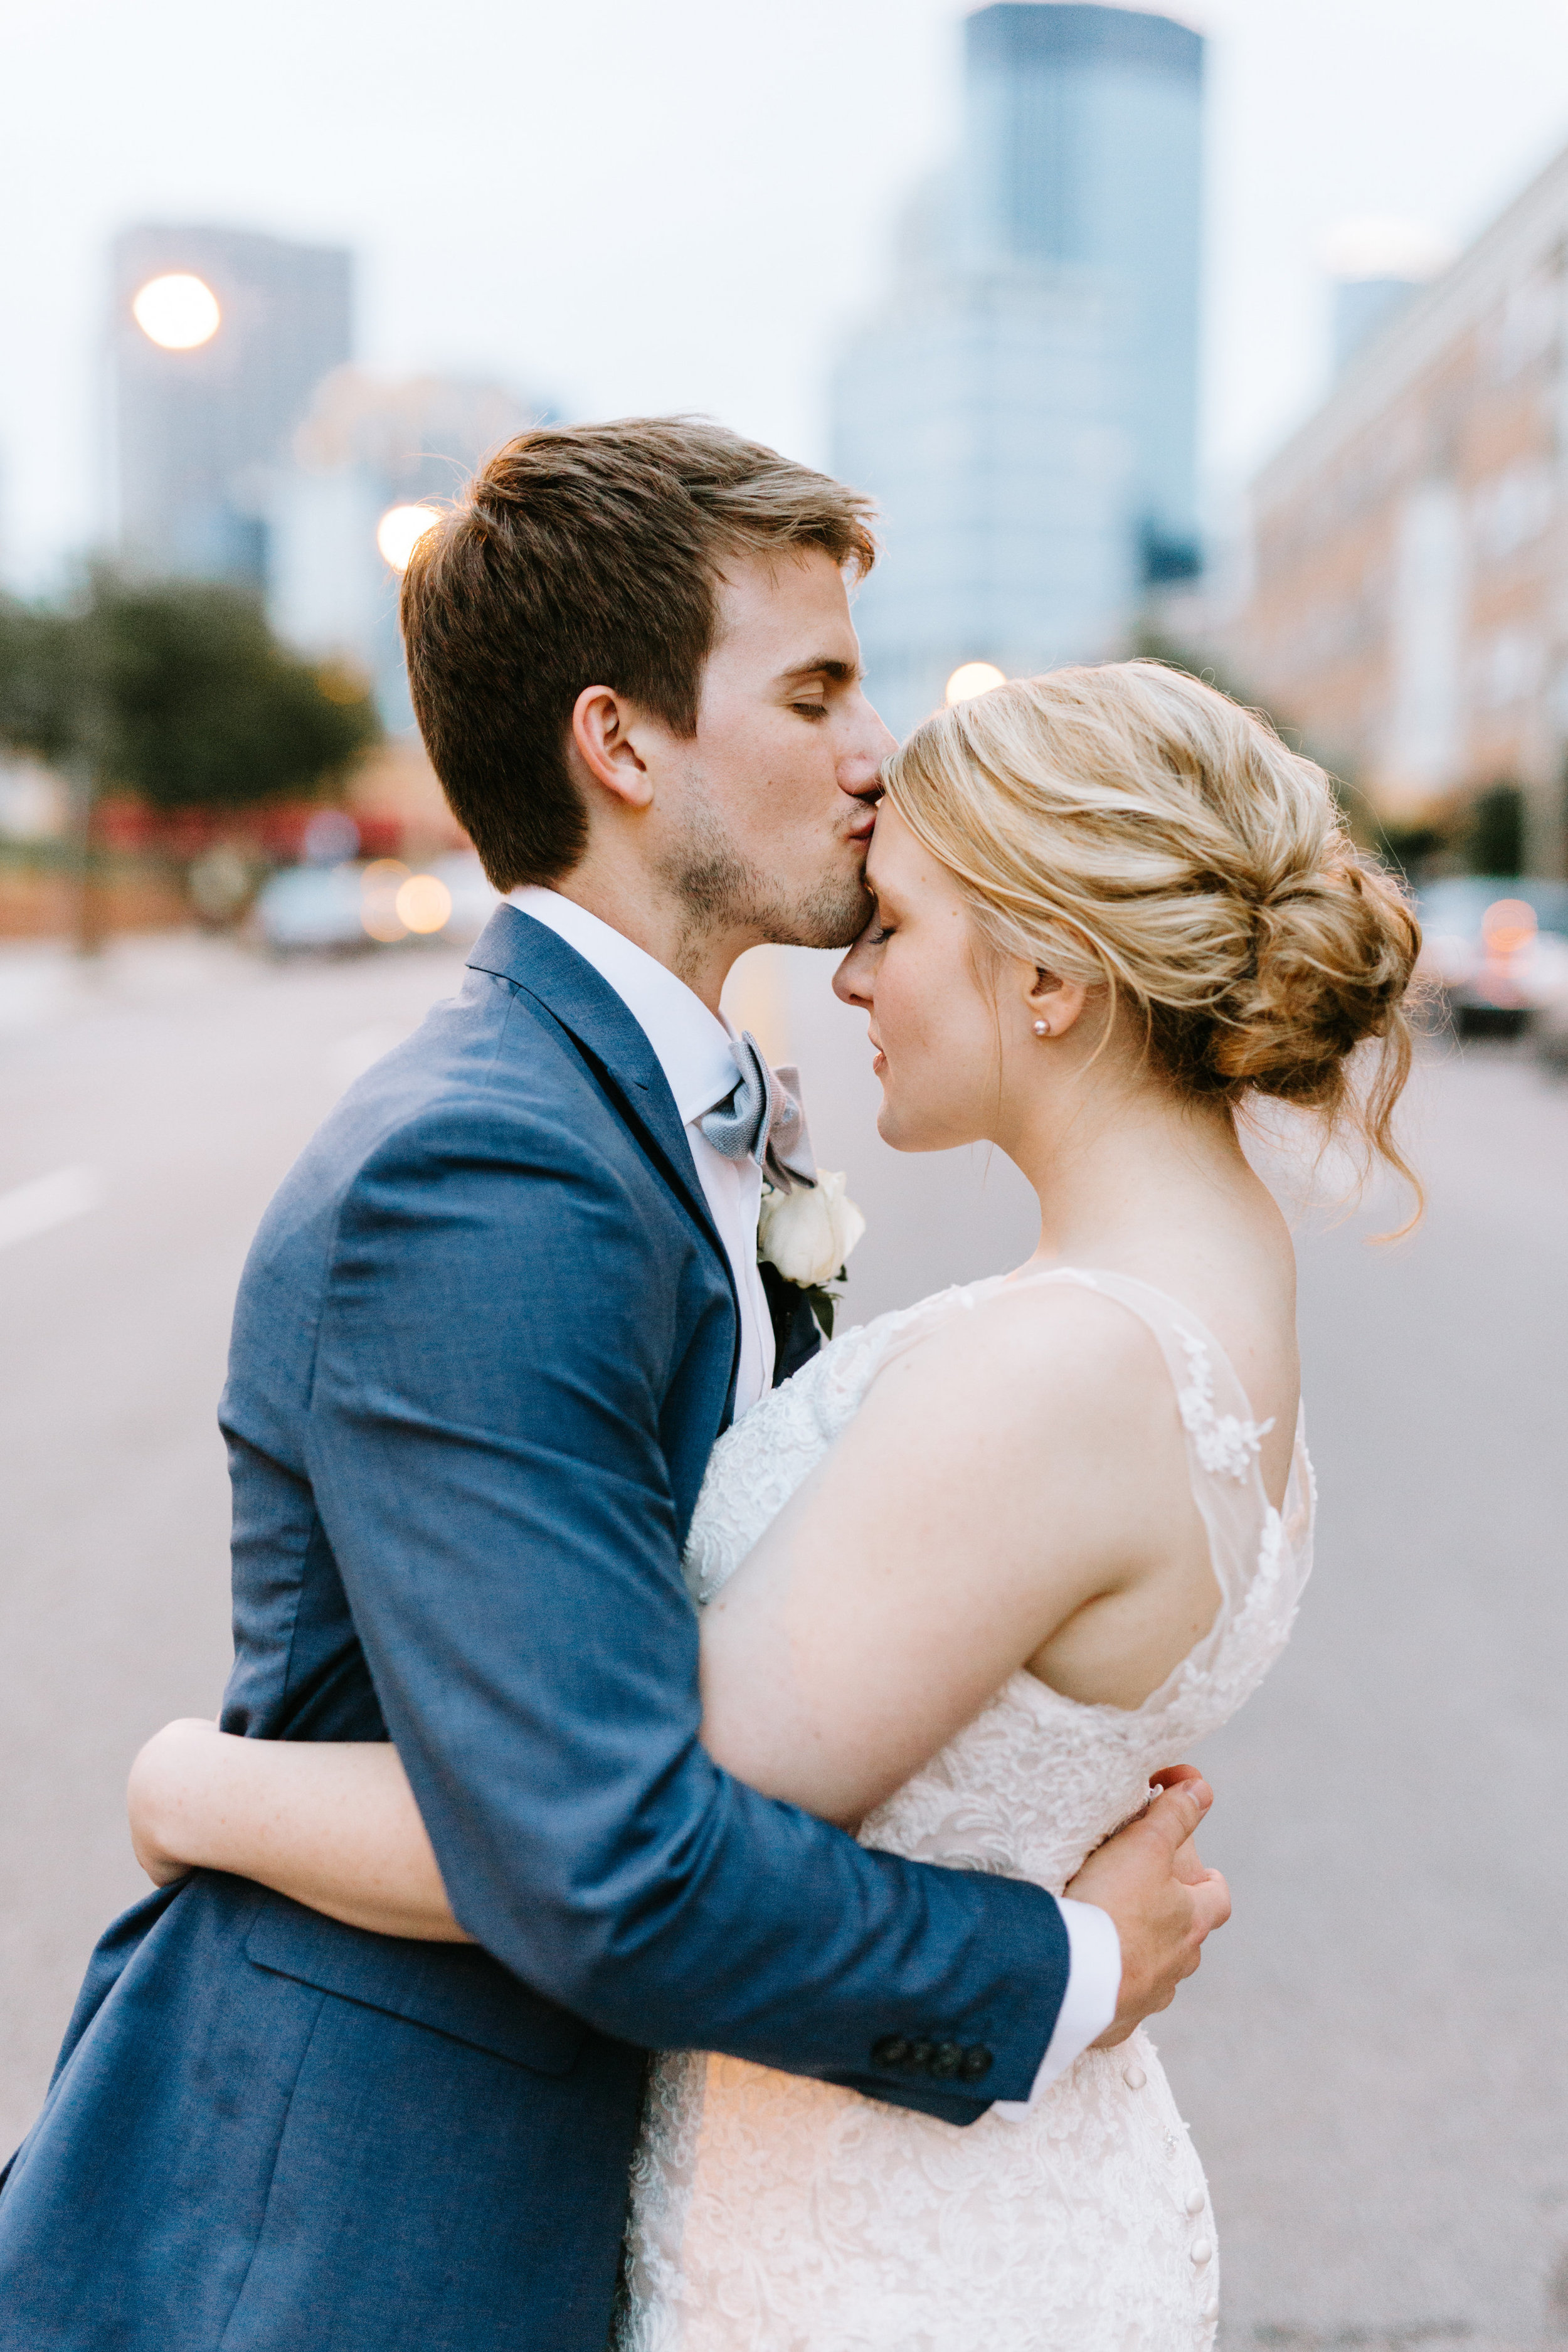 Lydia and Michael photo by Kate Becker Minneapolis wedding | Day of Coordinating at Loring Social by Sixpence Events & Planning